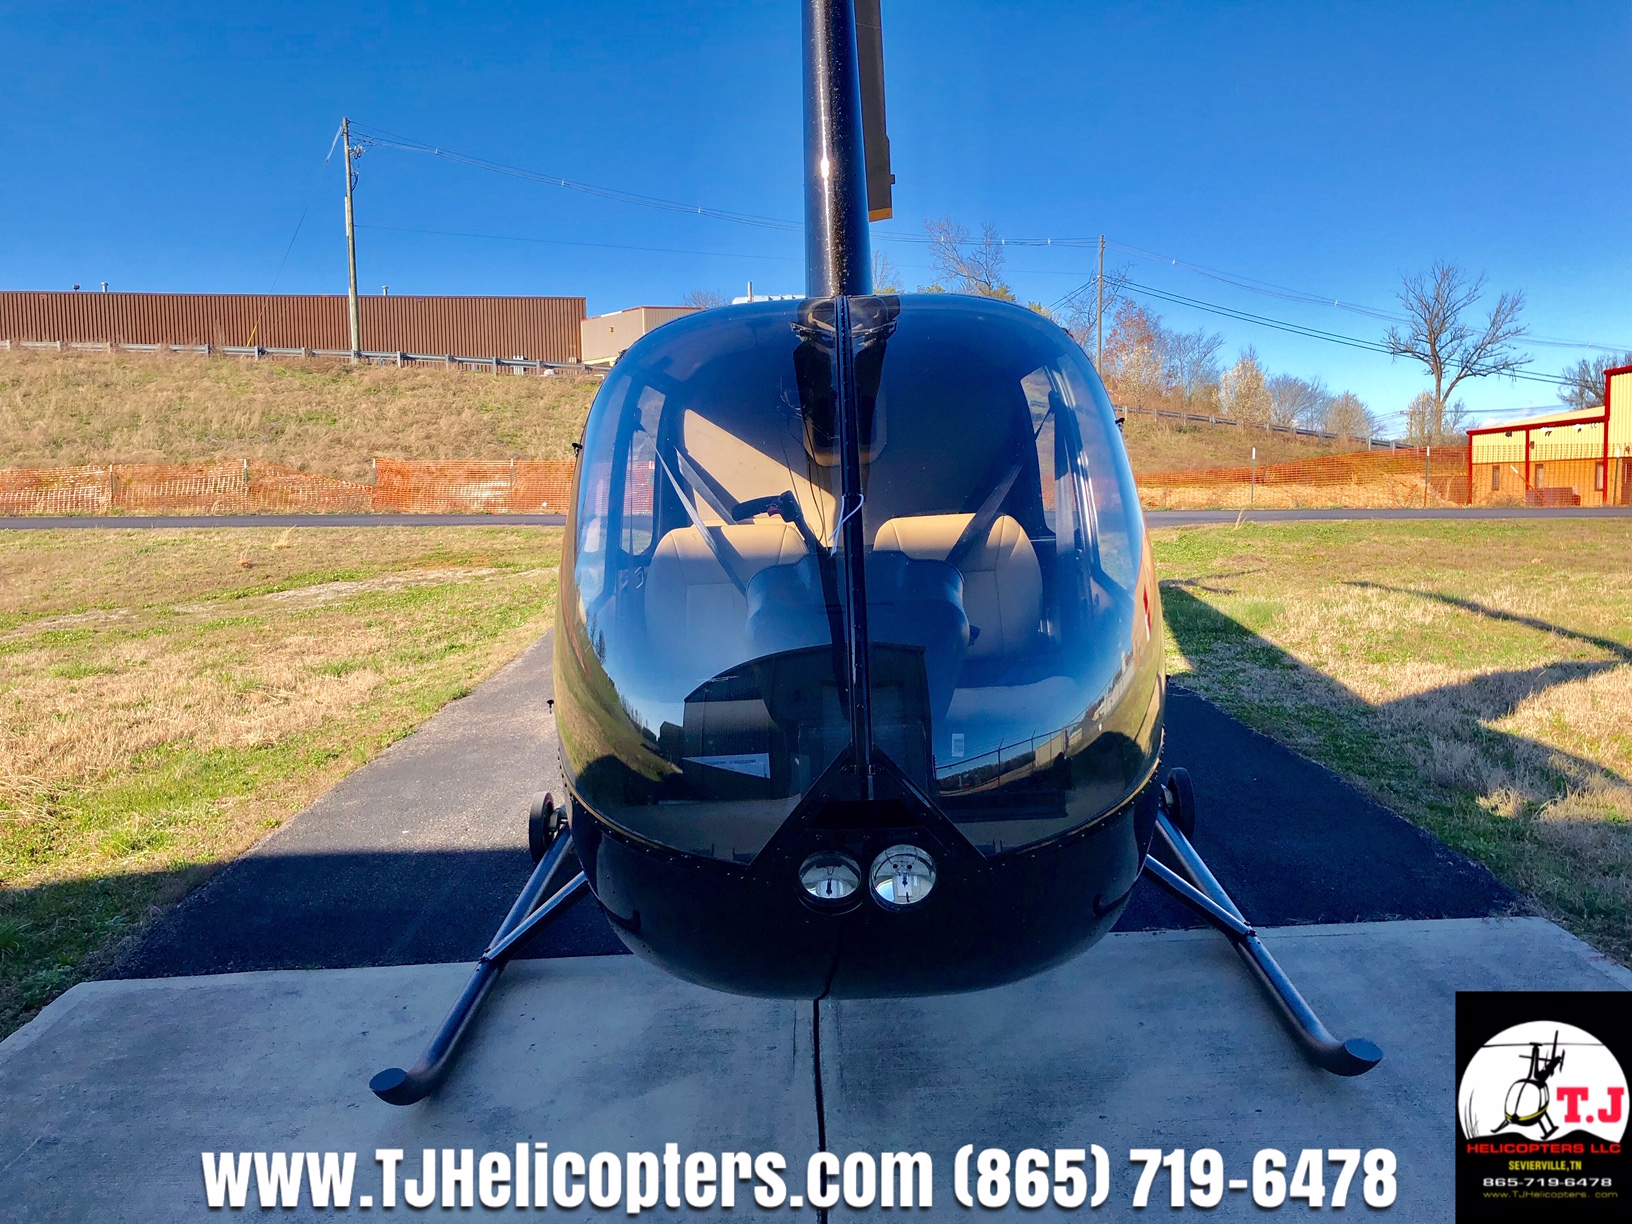 R44 Raven 2 Overhauled 2015 with AC